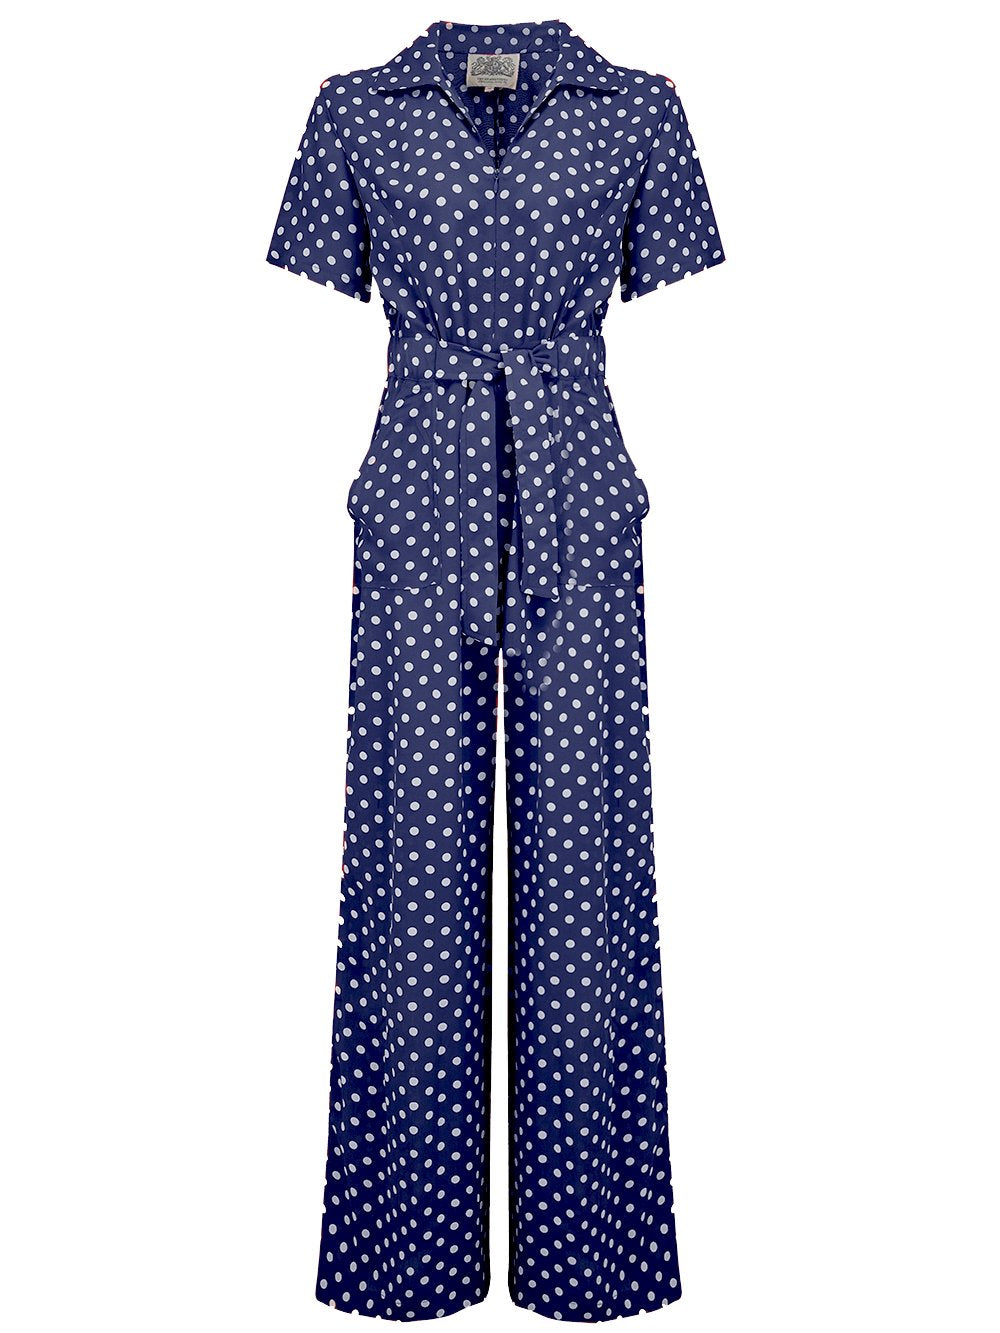 "The Seamstress Of Bloomsbury ""Lauren"" Siren Jump Suit in Navy Blue with Polka Dot Spots by The Seamstress of Bloomsbury, Classic 1940s Vintage Style - RocknRomance Clothing"